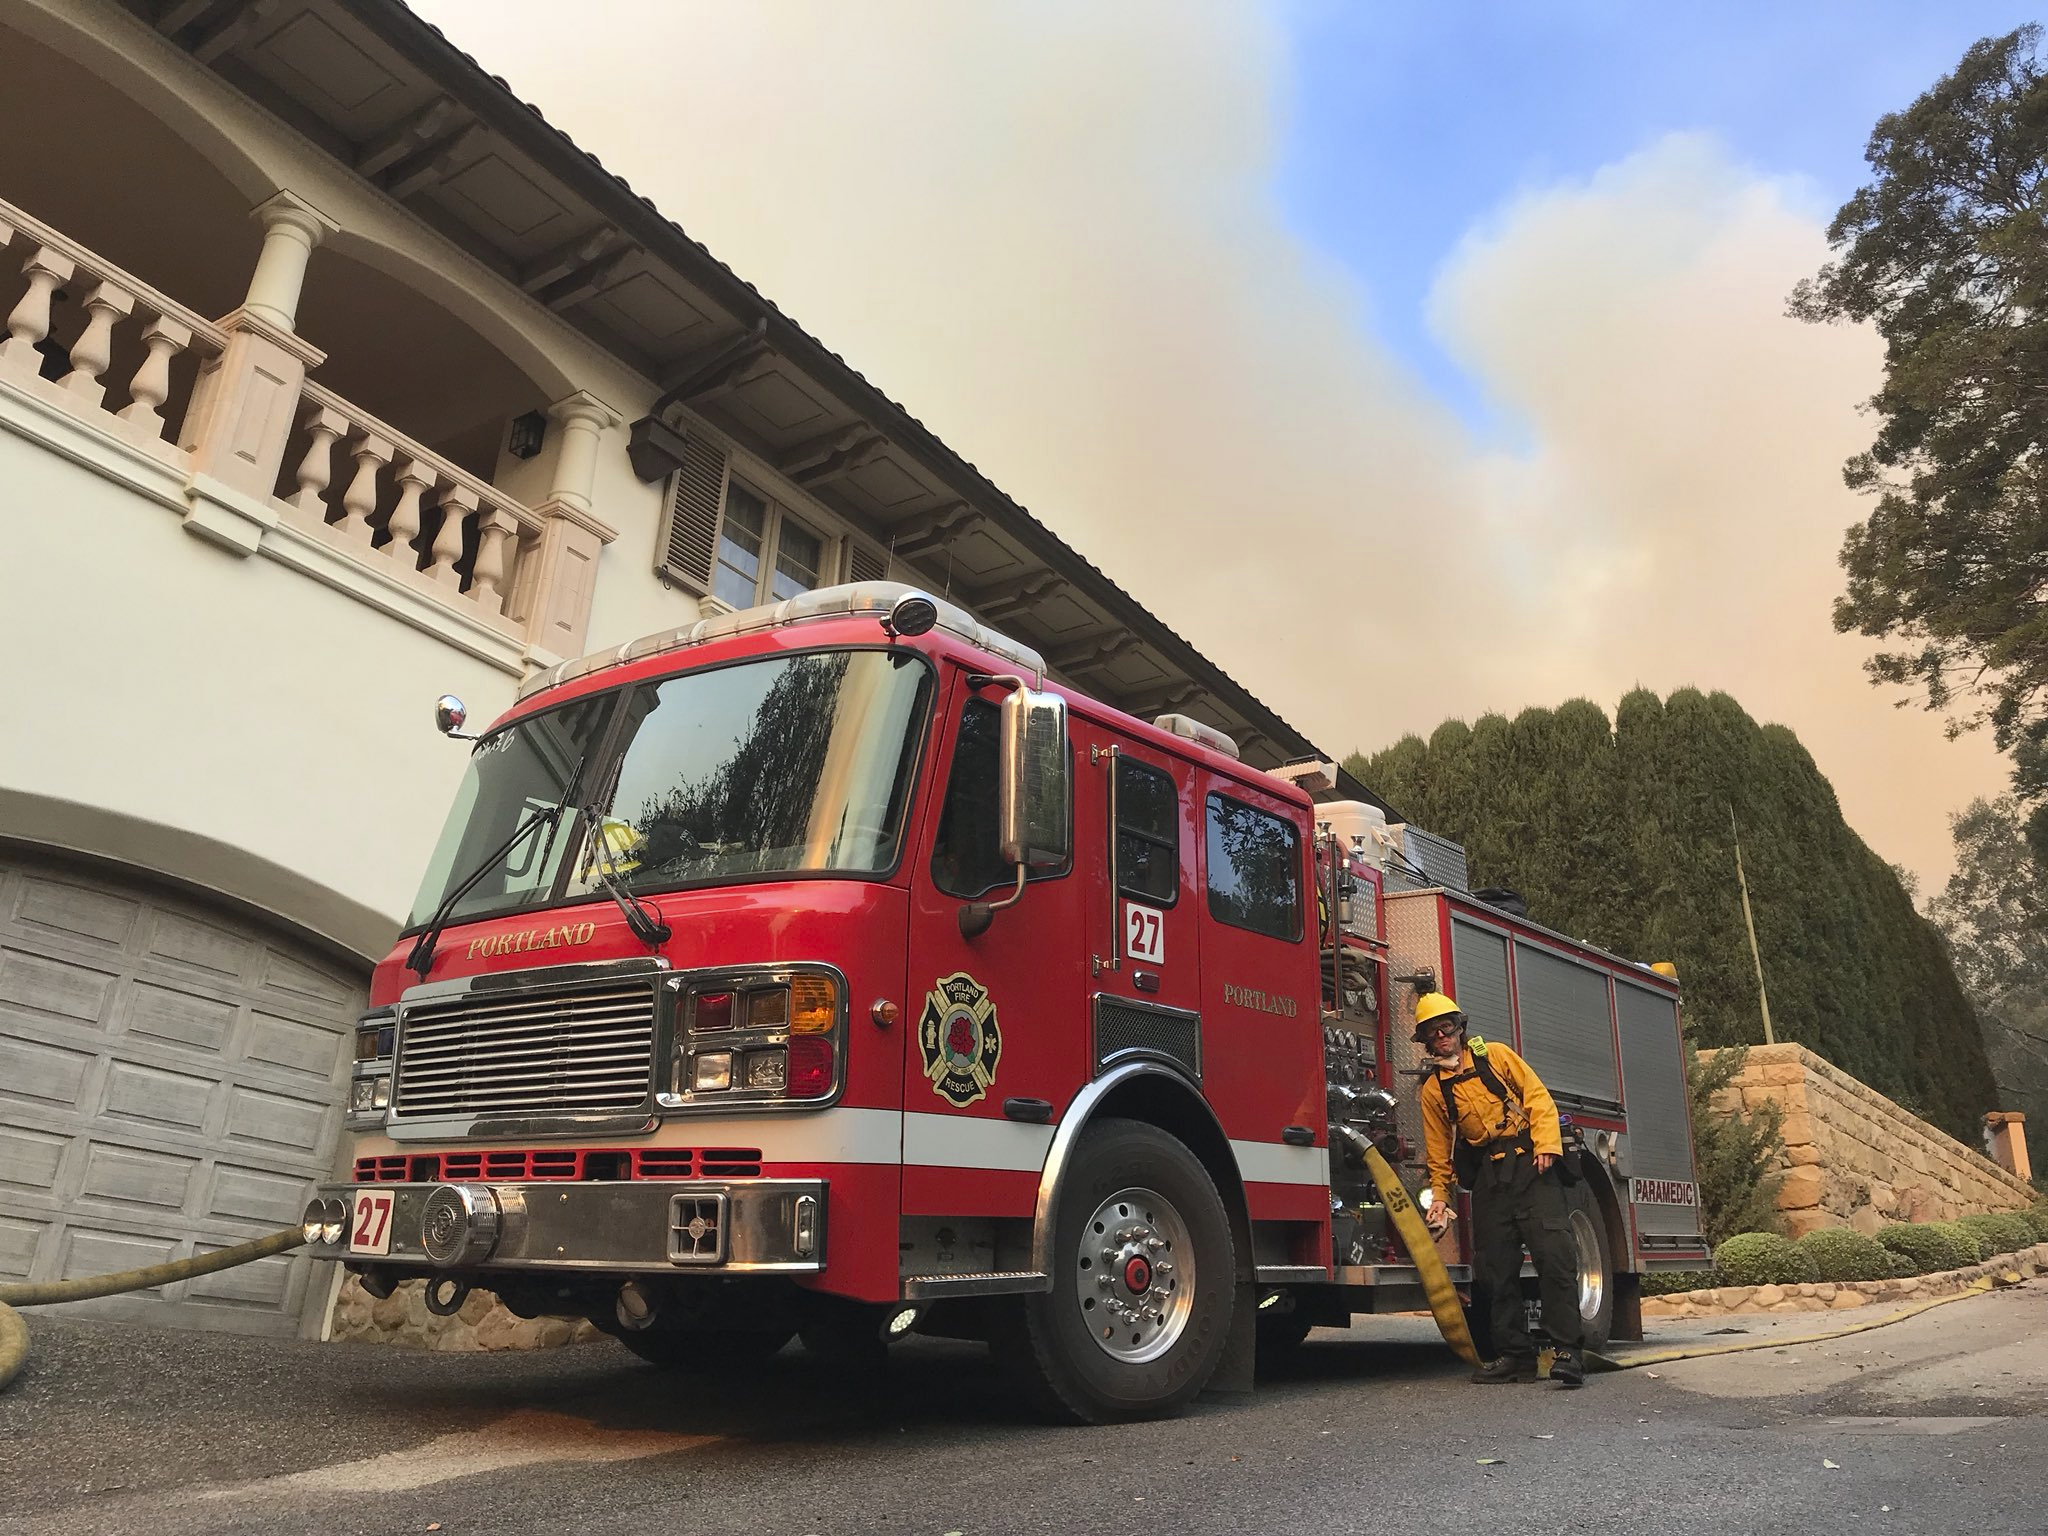 In this photo provided by the Santa Barbara County Fire Department, an engine company from Portland Ore., provides structure protection for a home near San Ysidro Road in Montecito, Calif., Saturday, Dec. 16, 2017. Santa Barbara County has issued new evacuation orders as a huge wildfire bears down on Montecito and other communities. The Office of Emergency Services announced the orders Saturday as Santa Ana winds pushed the fire close to the community.  Mike Eliason/Santa Barbara County Fire Department via AP)